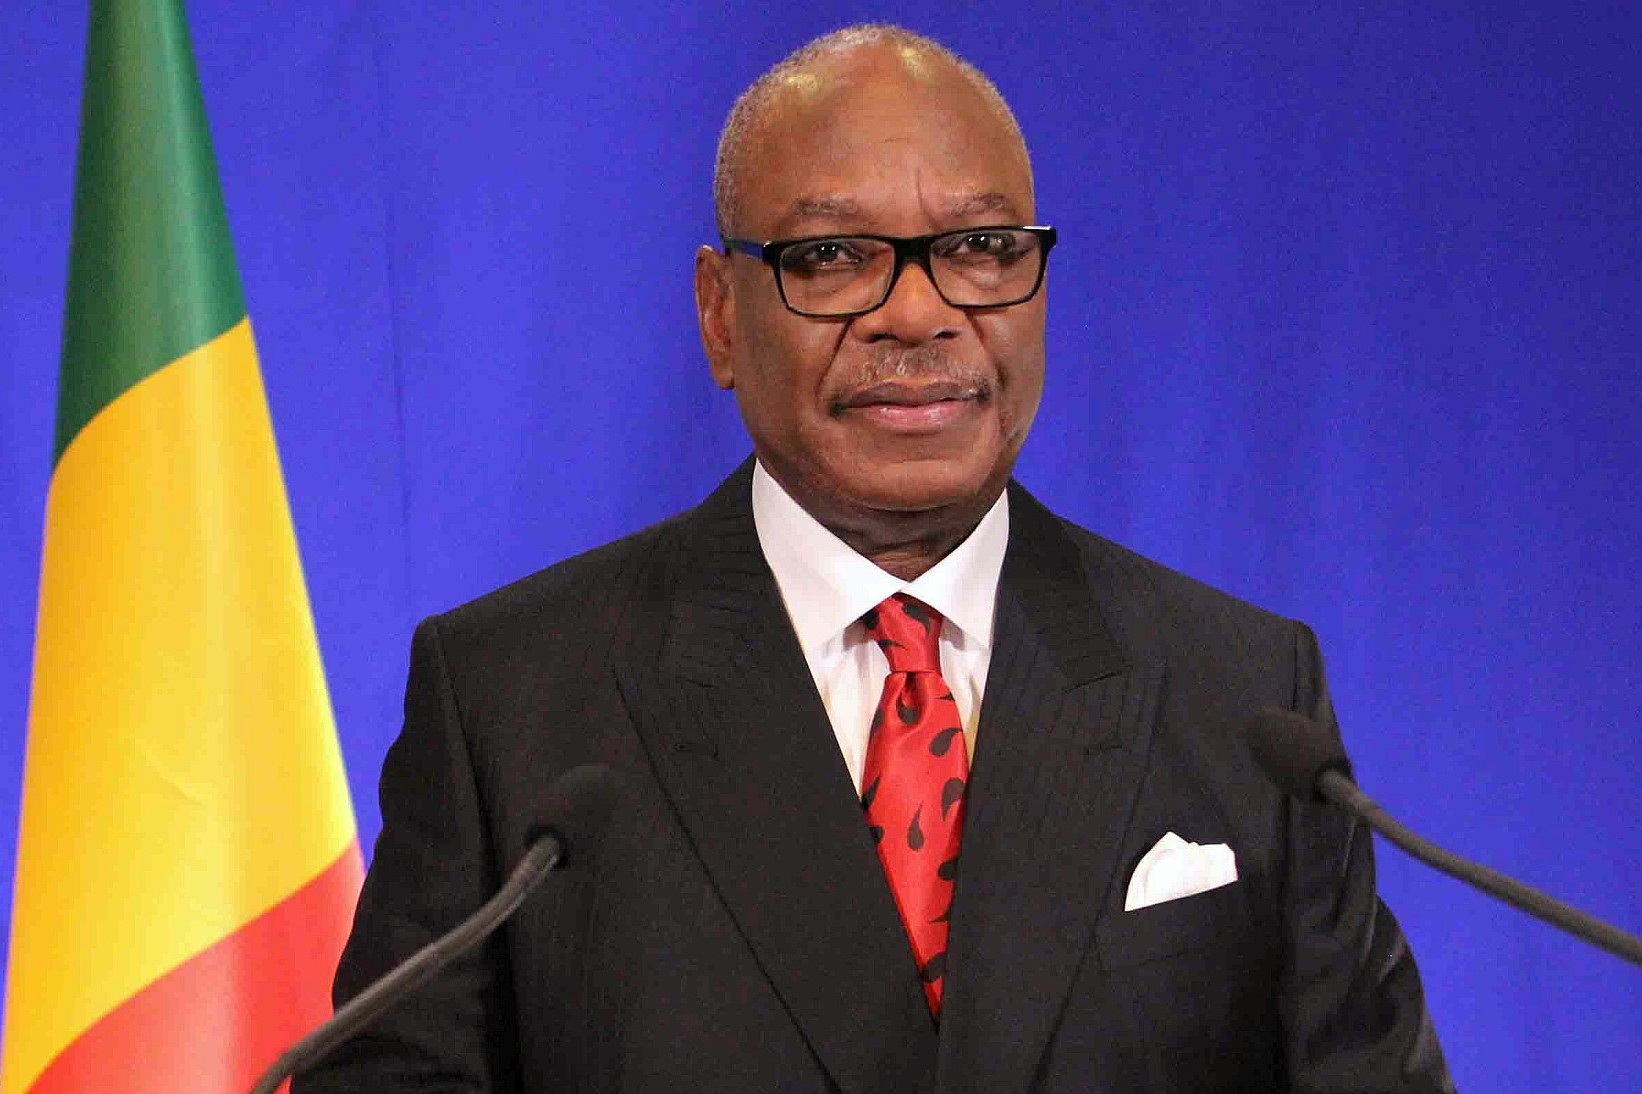 Will Keita be re-elected as president of Mali?